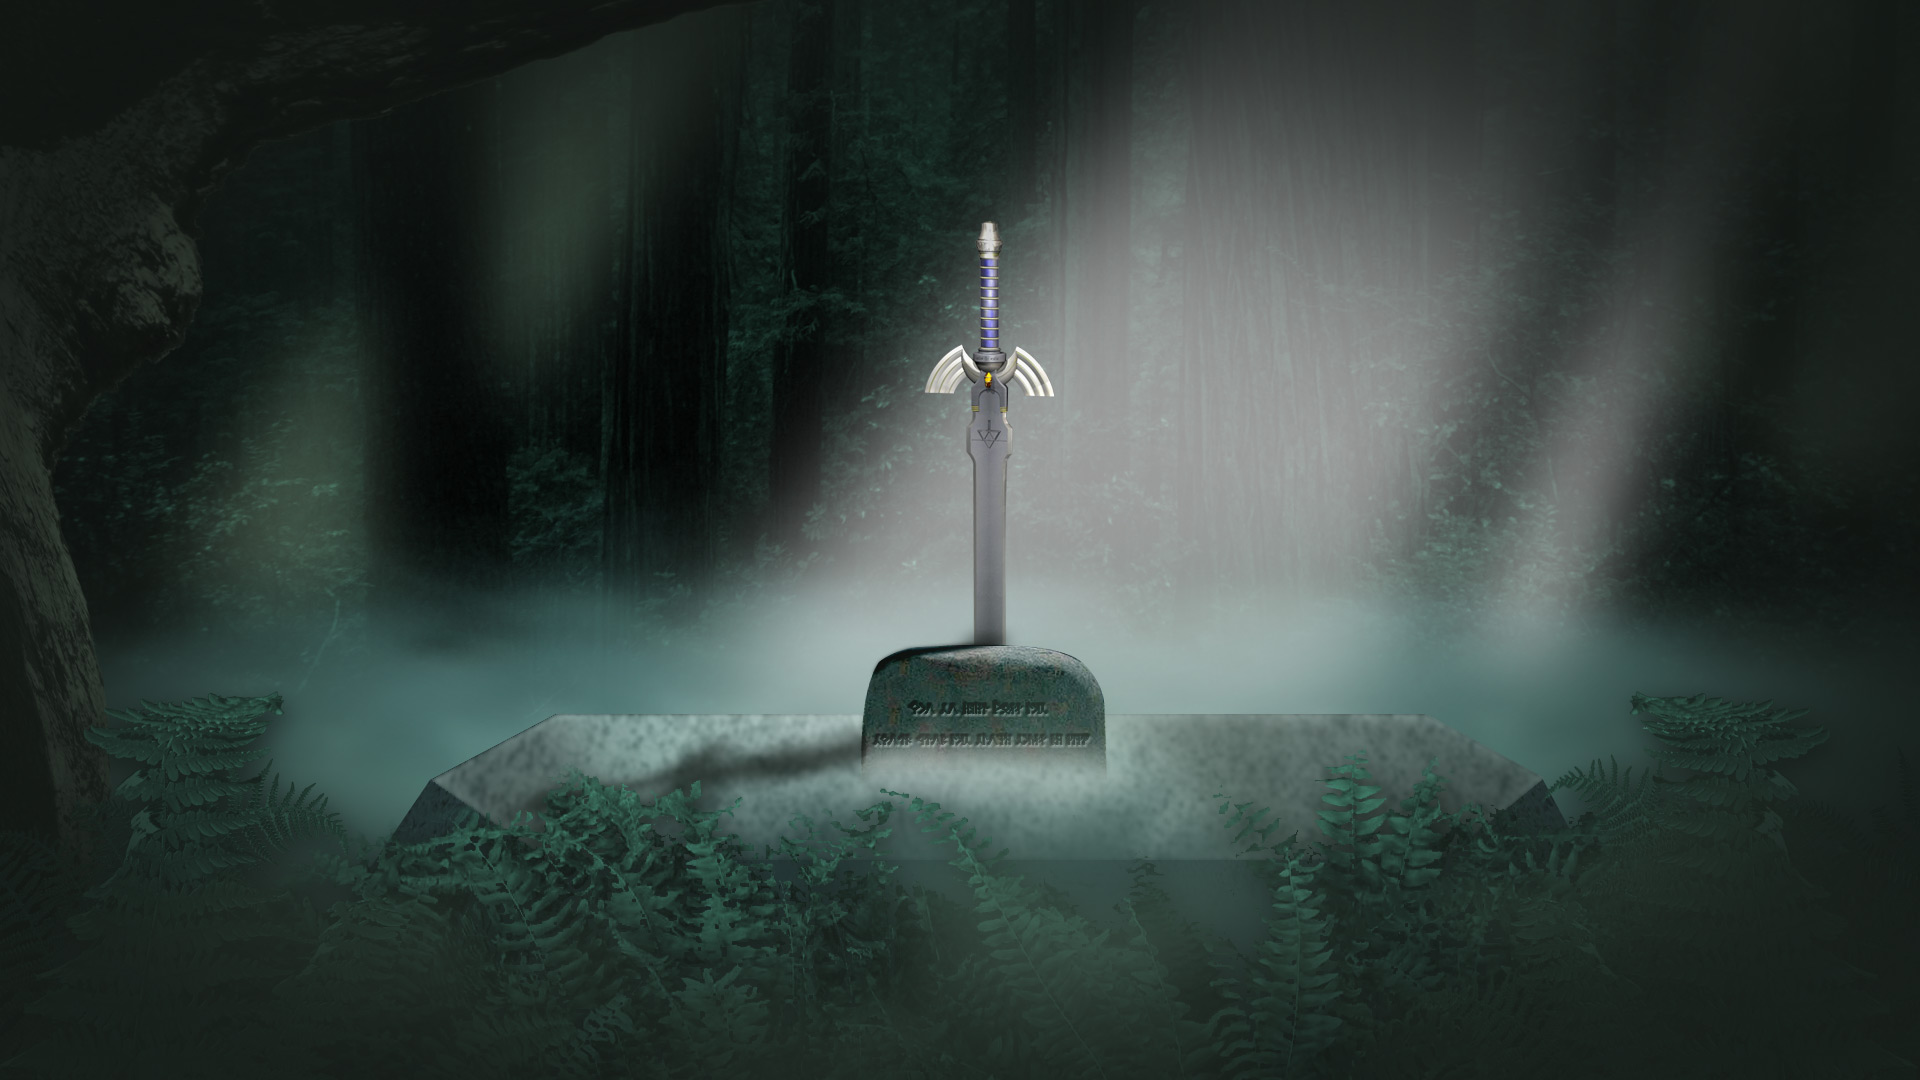 Master Sword Wallpaper 503 :: Sword Desktop Wallpapers: digitalresult.com/view/9-sword-desktop-wallpapers